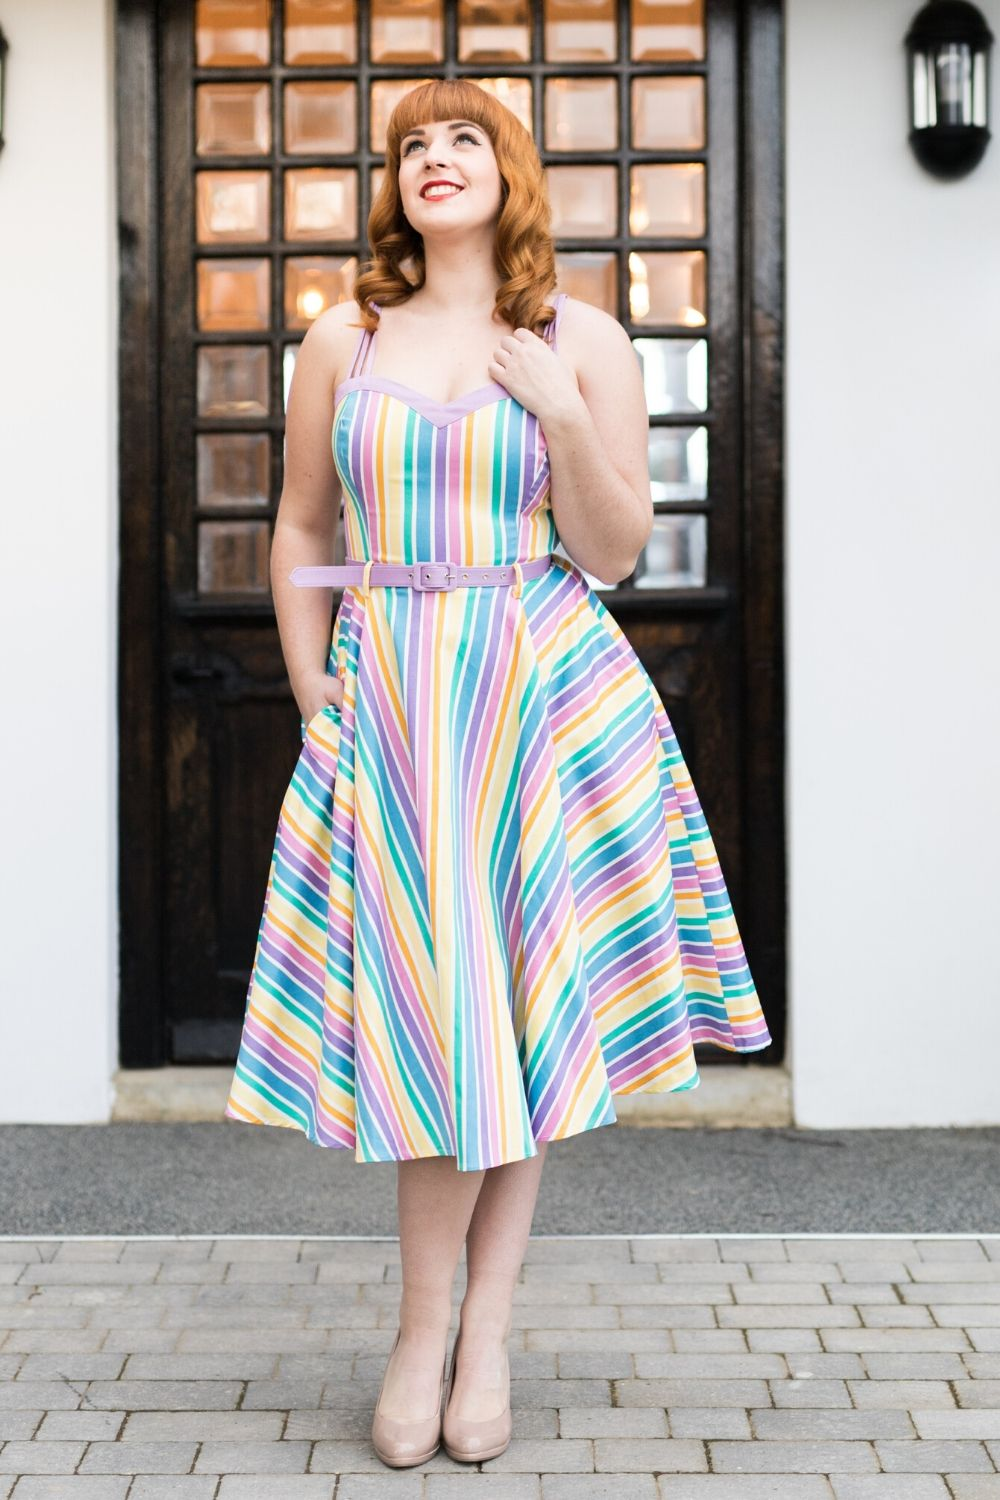 Pastel Retro Rainbow Dress